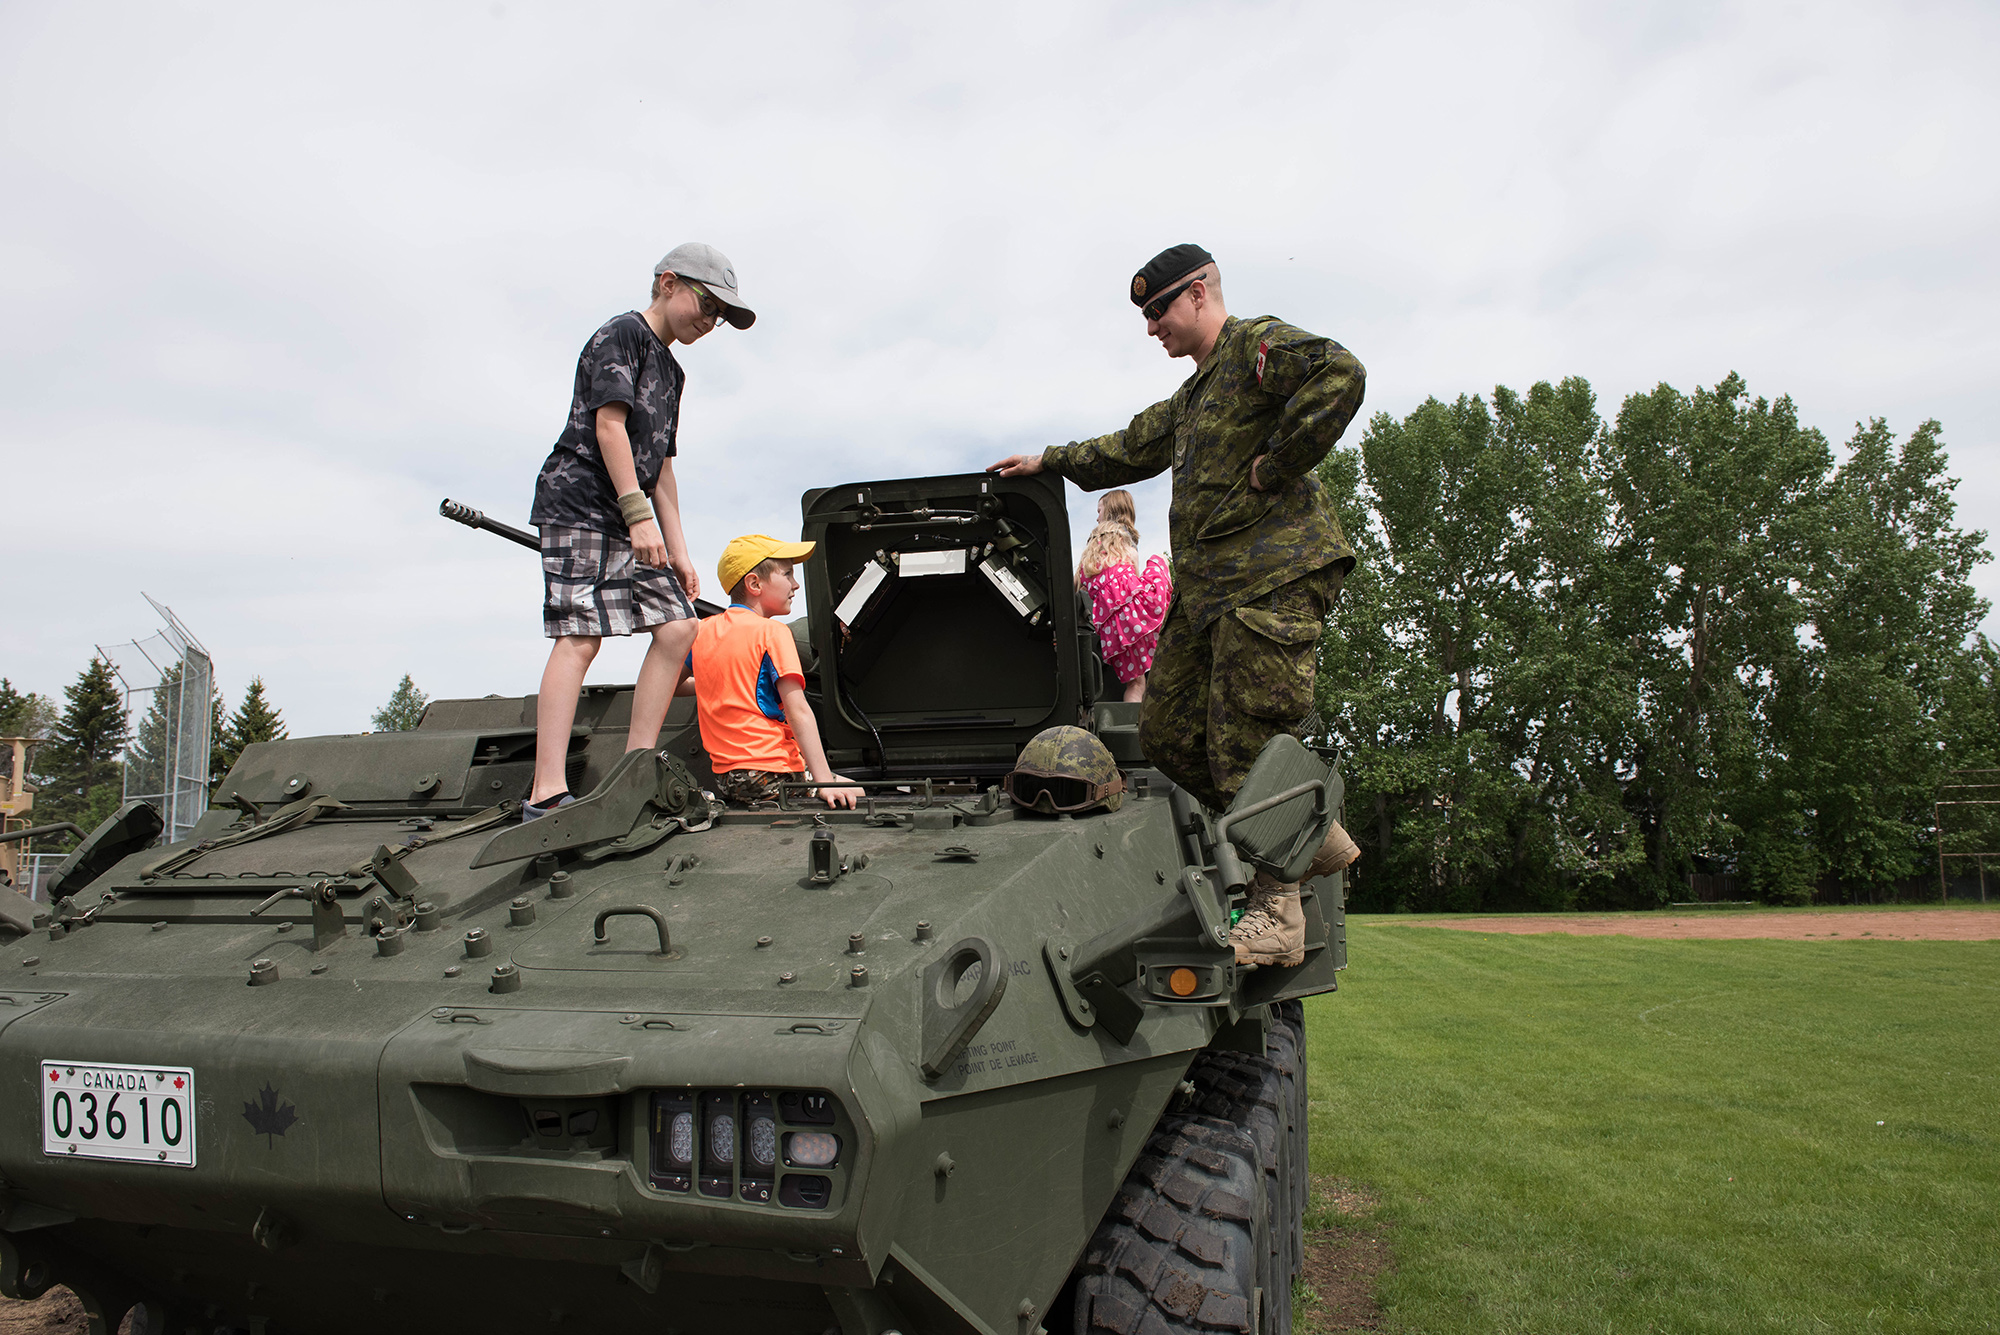 A soldier with 1 Combat Engineer Regiment shows the children of Bon Accord the inside of a Light Armoured Vehicle in Bon Accord, Alberta on June 3, 2017. Photo: Master Corporal Andrew Davis, 3rd Canadian Division Support Base Edmonton. © 2017 DND-MDN Canada